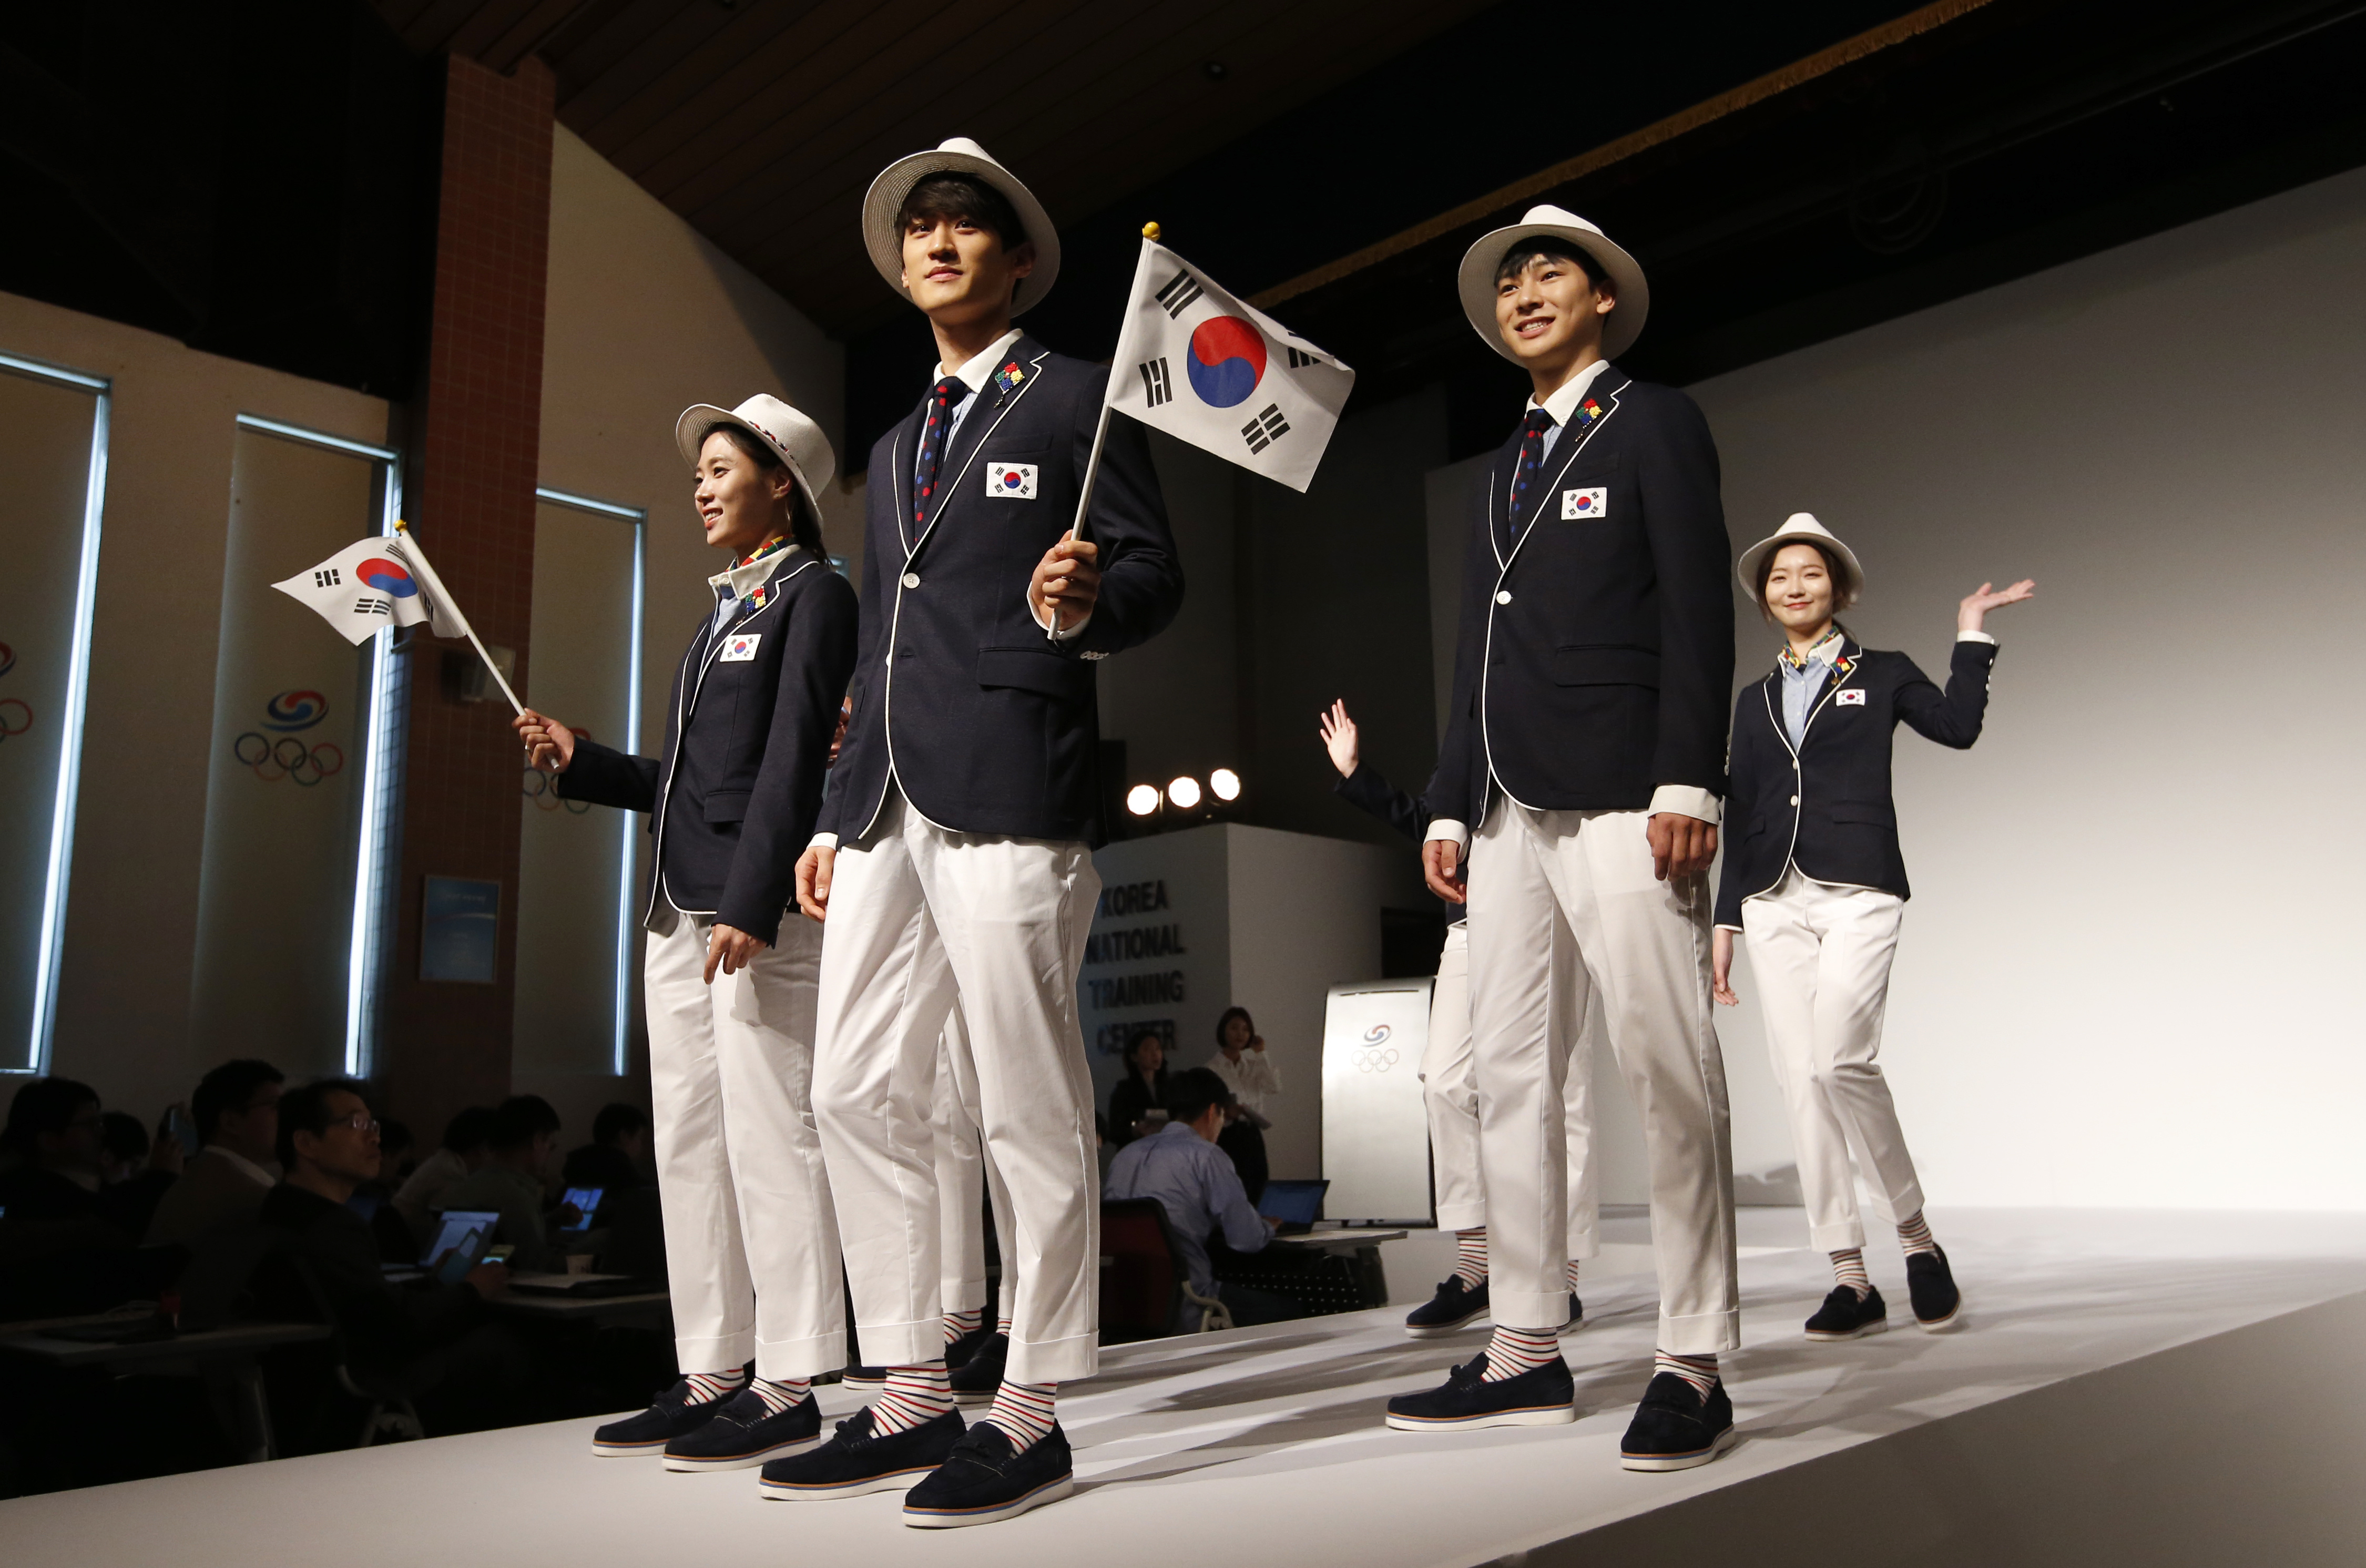 South Korean Olympic athletes and models present the South Korean Olympic team uniforms for the opening and closing ceremonies of the 2016 Rio de Janeiro Olympic Games at Korean National Training Center in Seoul, South Korea, Wednesday, April 27, 2016. South Korea's Olympic committee on Wednesday unveiled long-sleeved shirts and pants it says will help protect the country's Olympic athletes from the mosquito-borne Zika virus at this year's games in Rio de Janeiro. (AP Photo/Lee Jin-man)